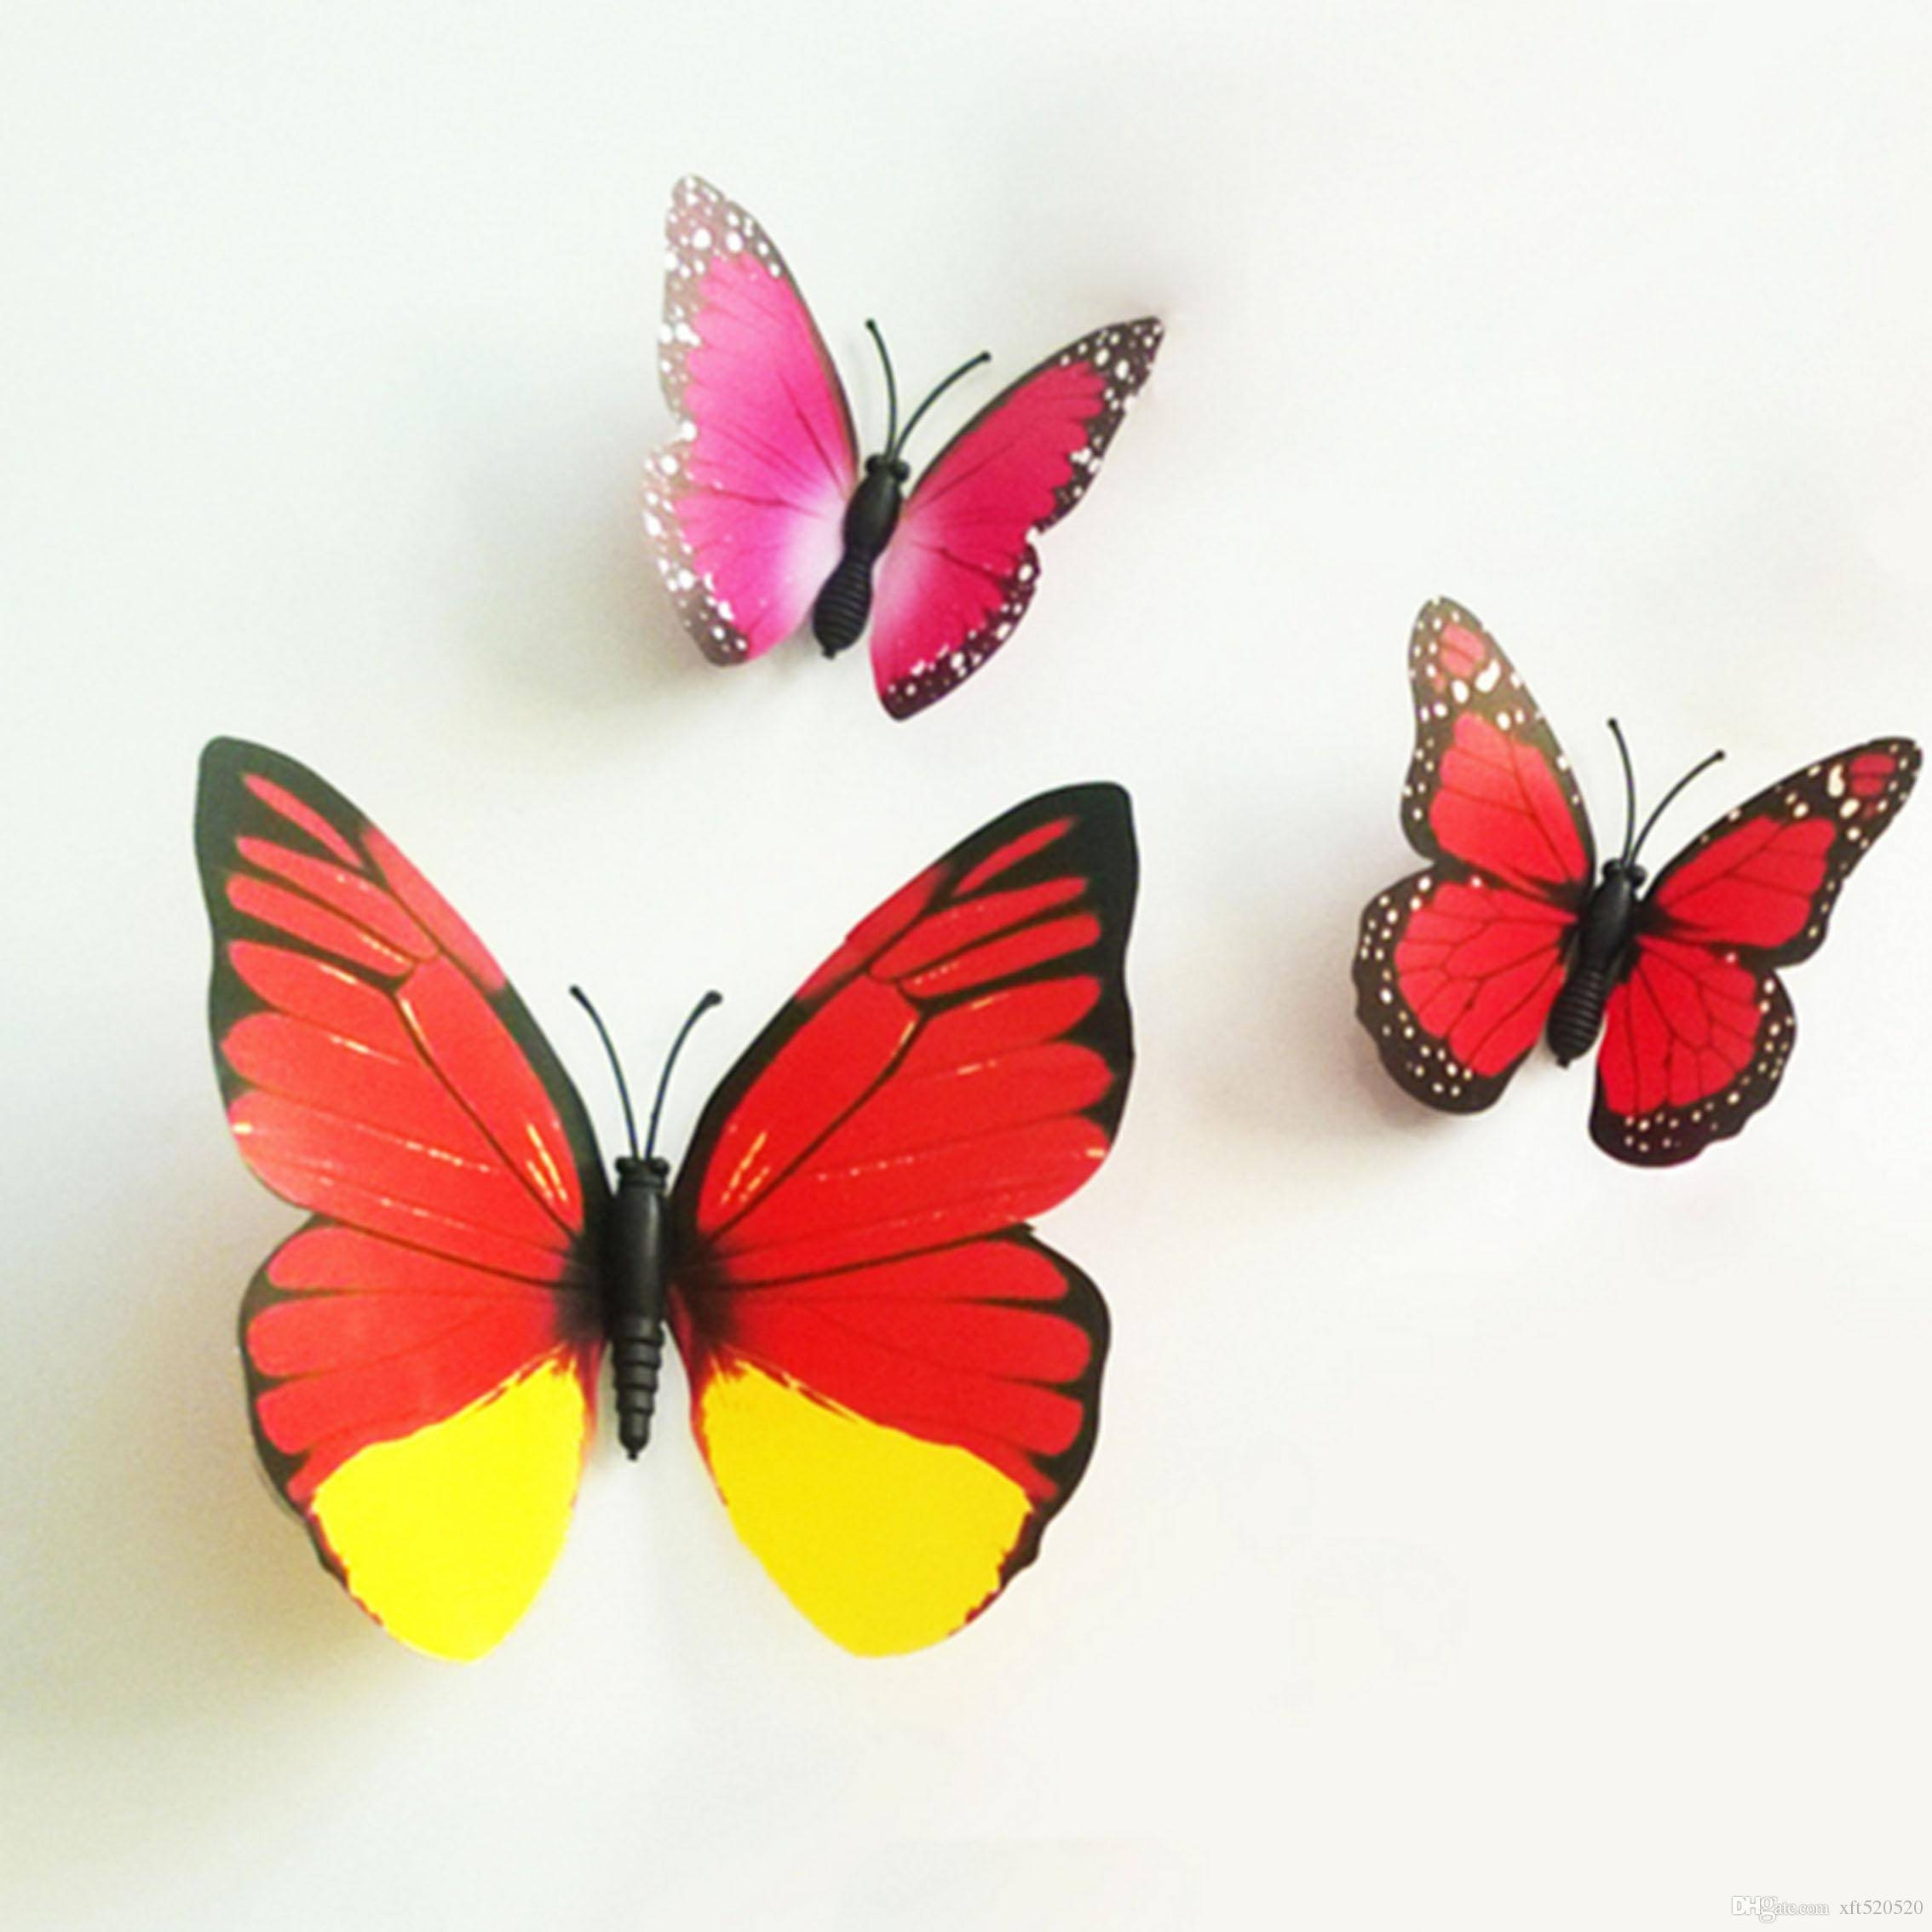 Colorful Design Art 3D Butterfly Wall Stickers Wall Decor Plastic Within Latest 3D Butterfly Wall Art (View 12 of 20)